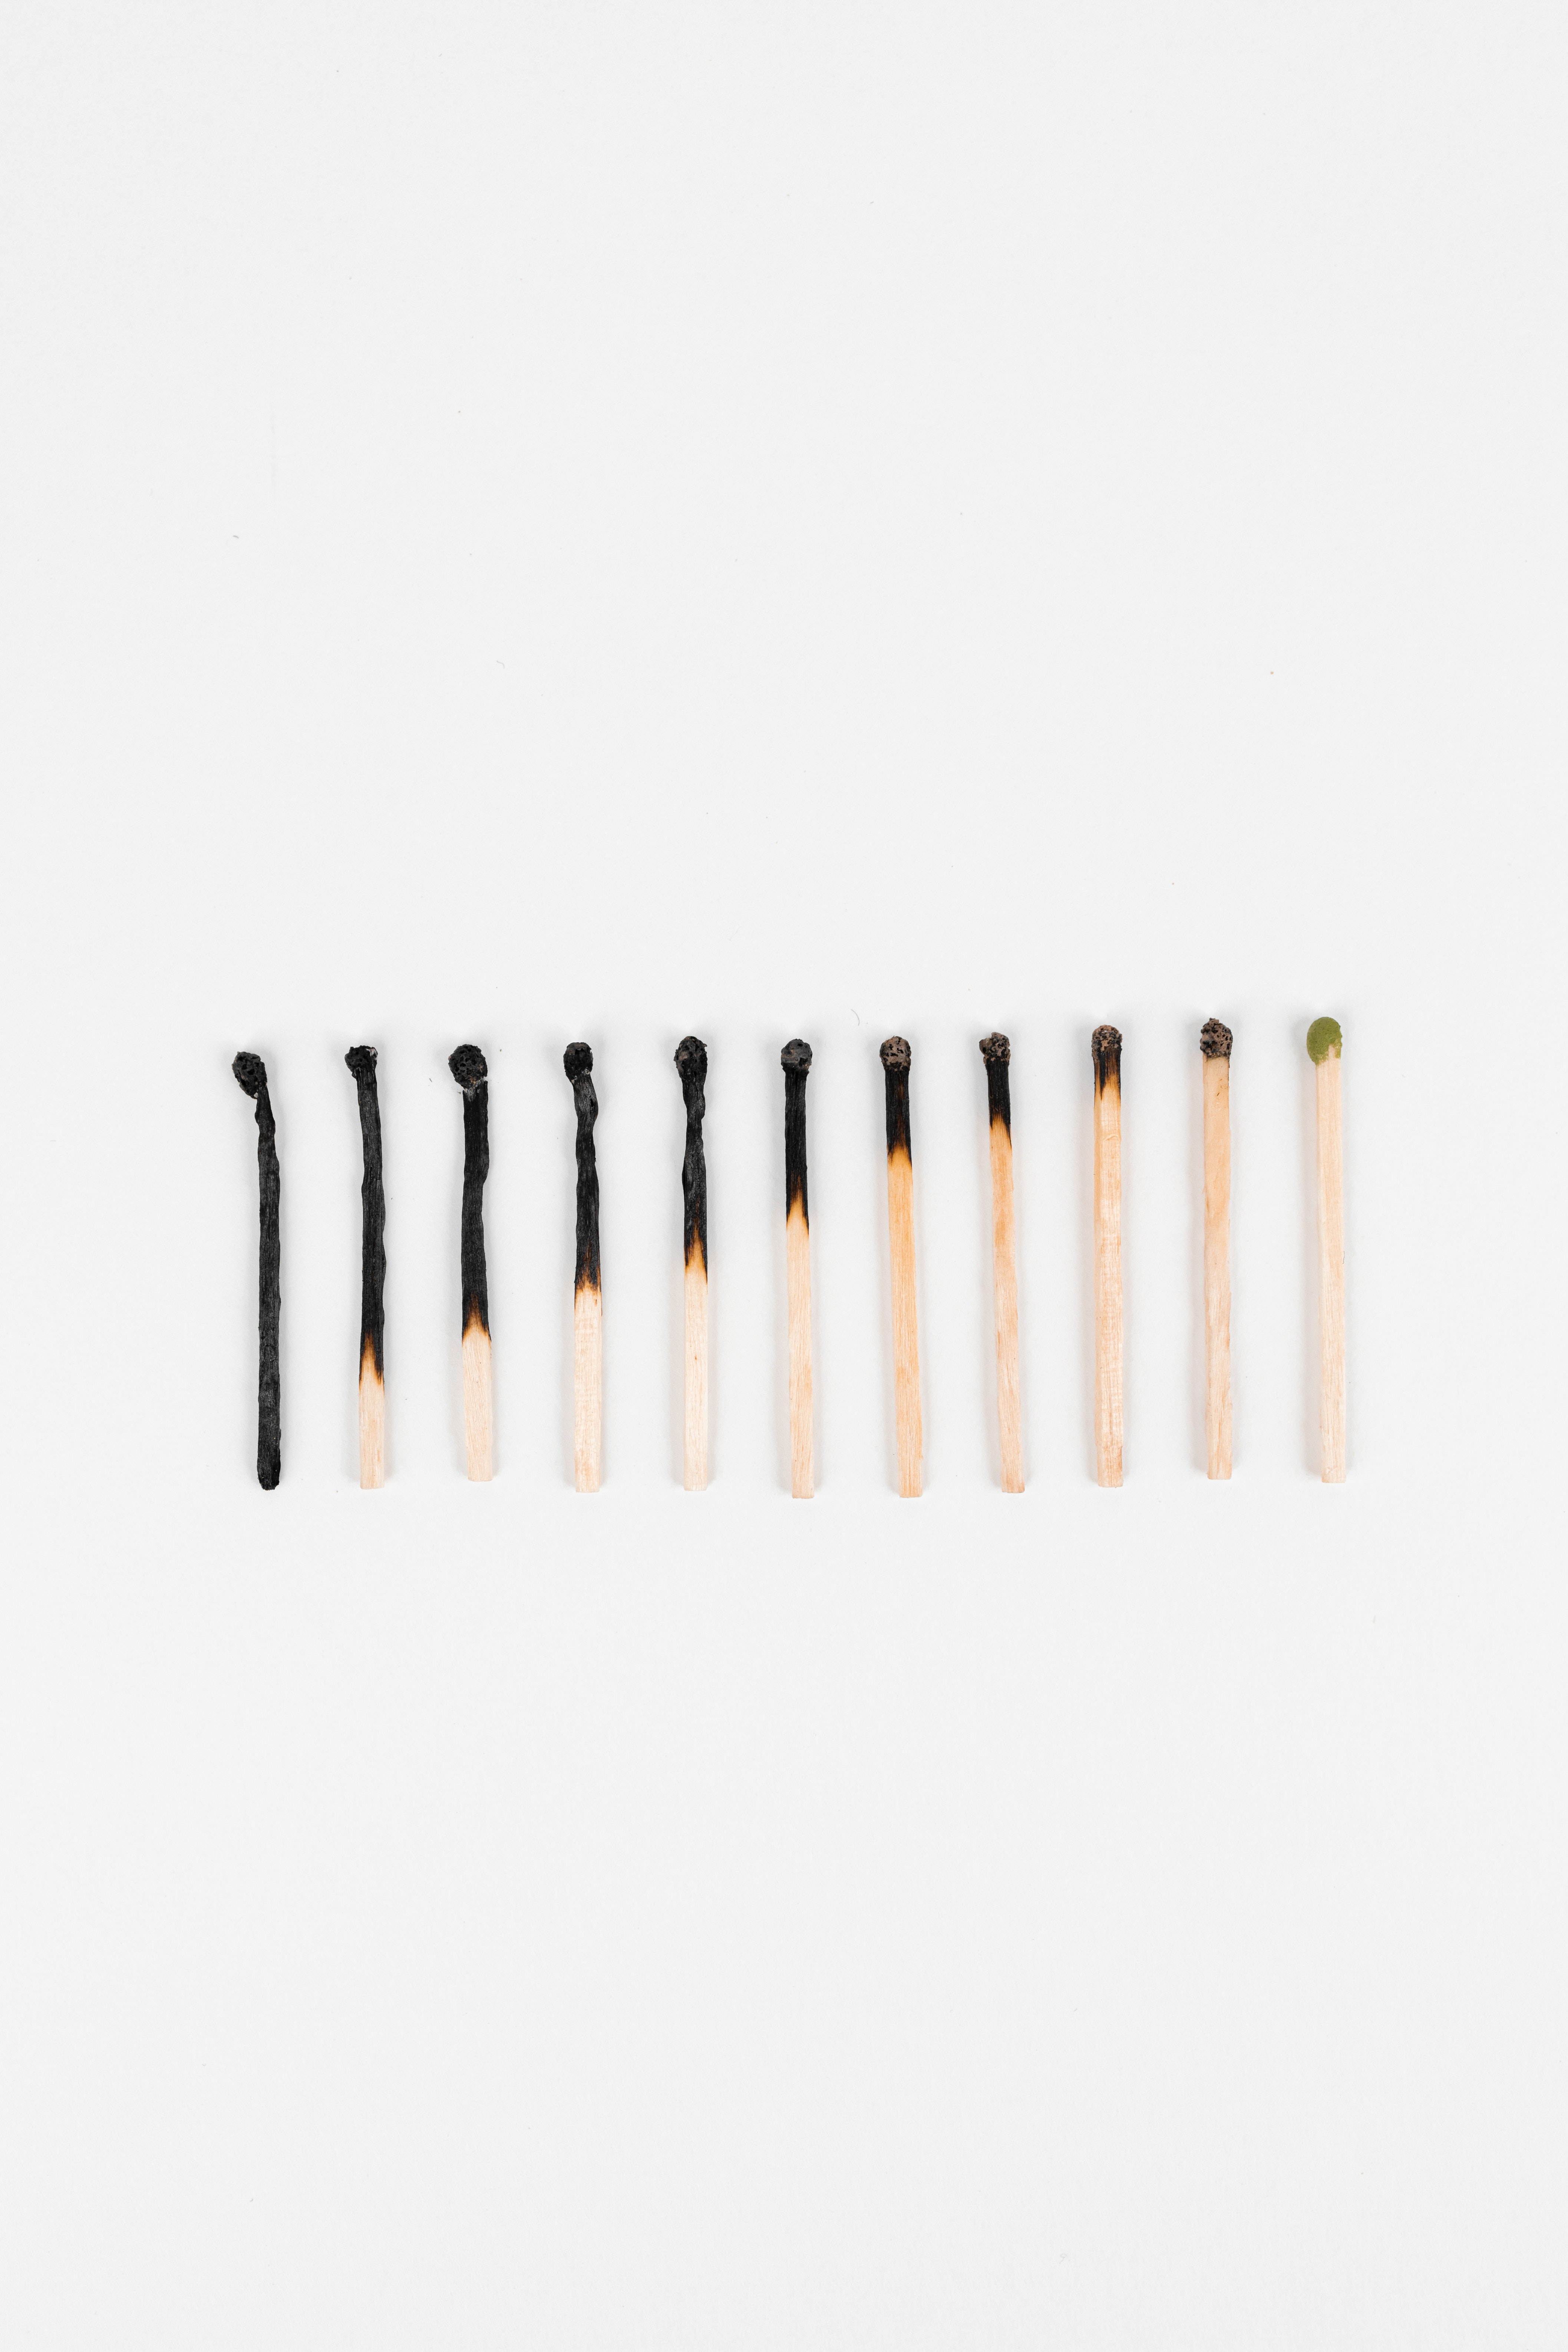 Burnt matches on a white table